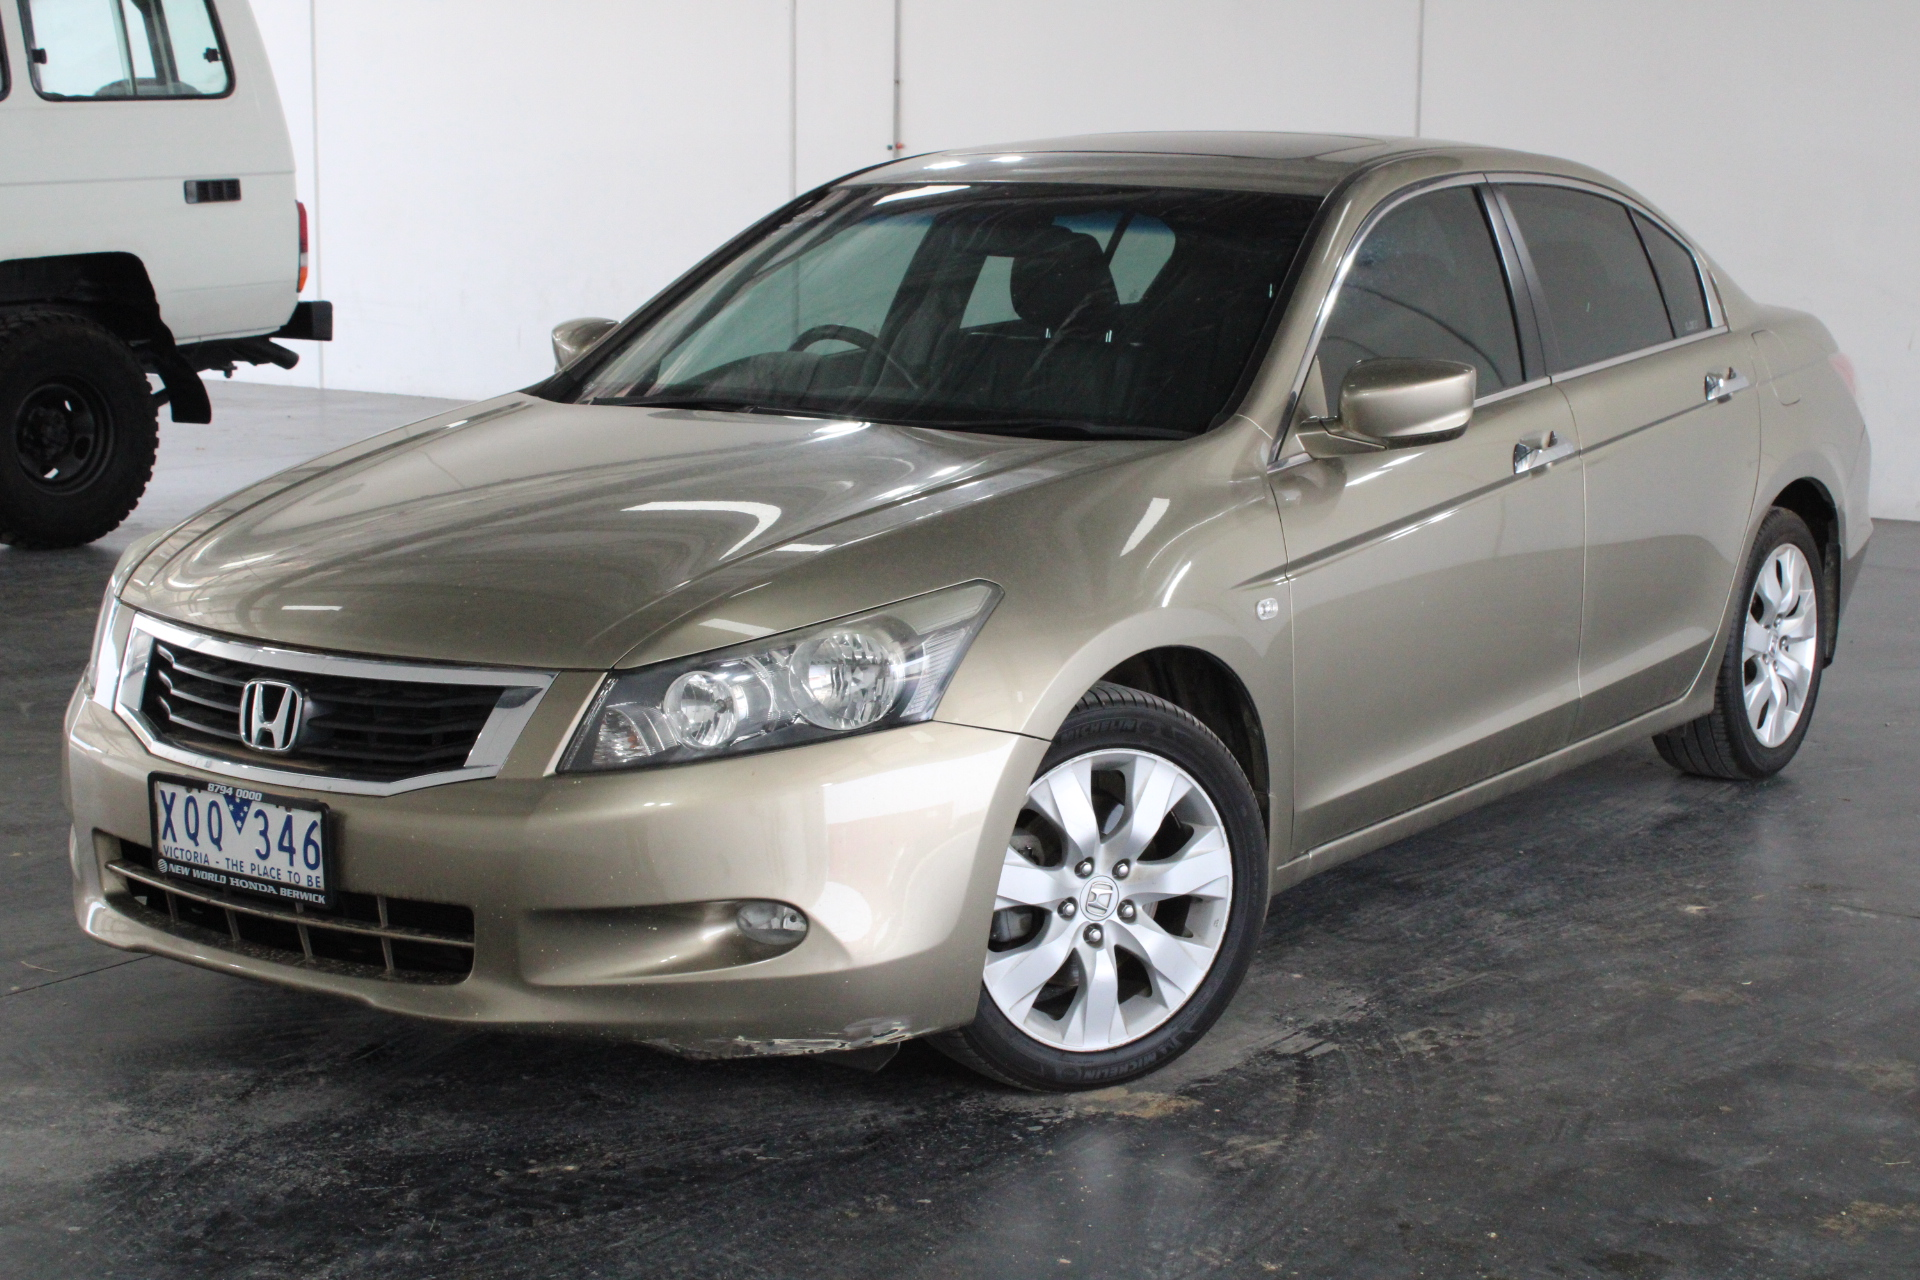 2010 Honda Accord VTi LUXURY 8TH GEN Automatic Sedan